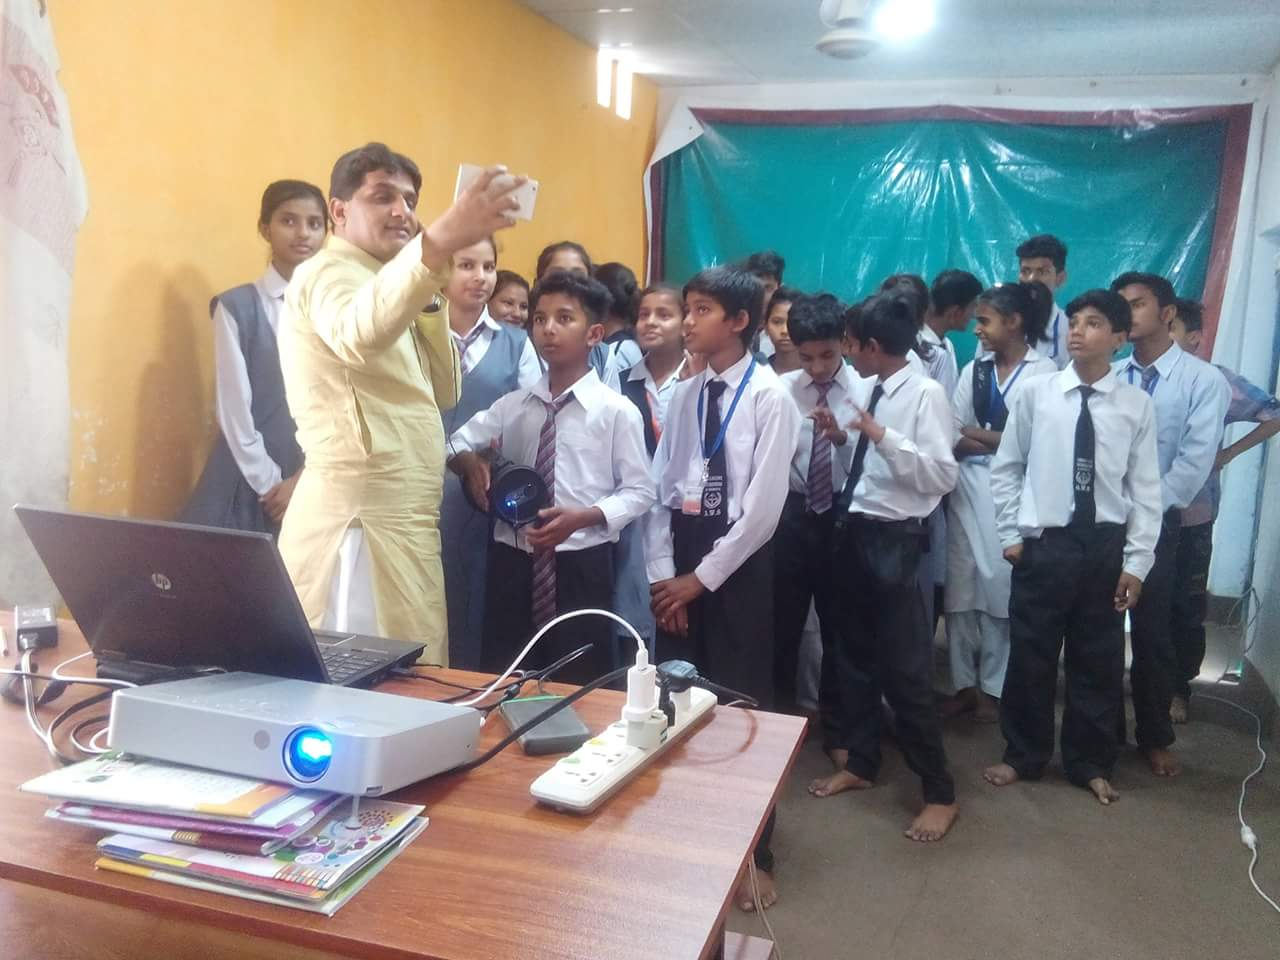 A photo of Raza in a classroom. He's taking a selfie with his students.